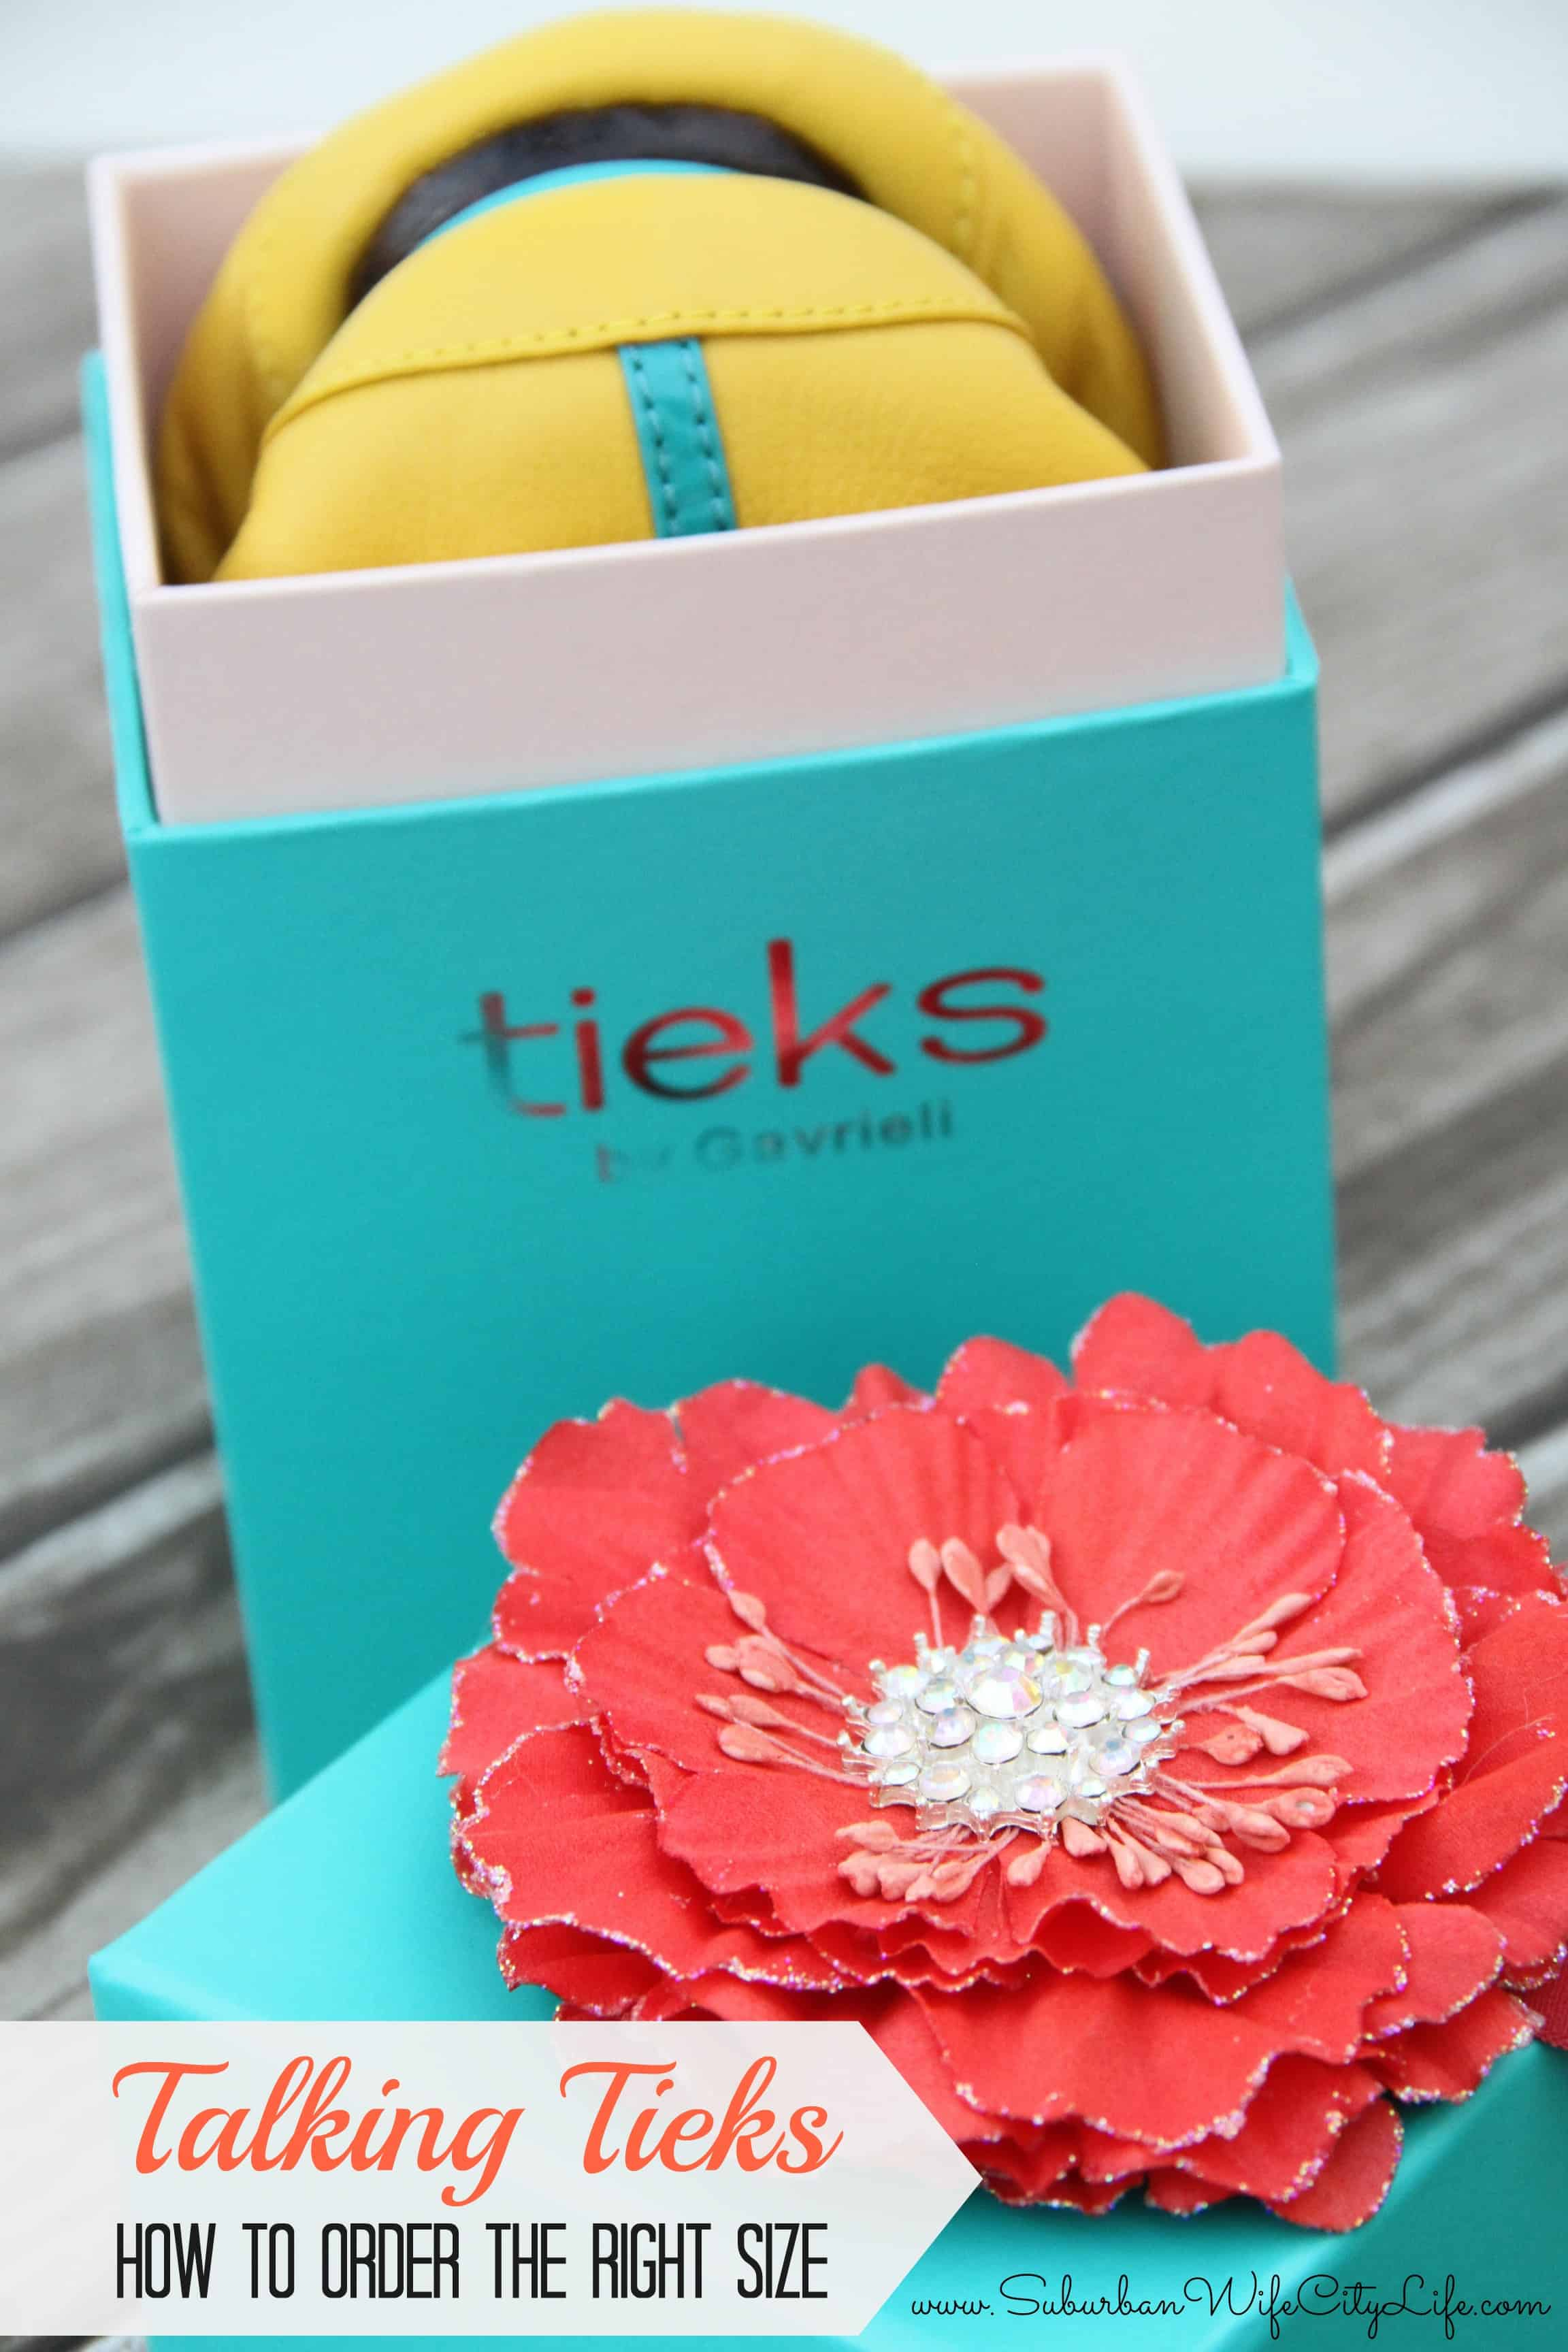 Tieks: How to order the right size